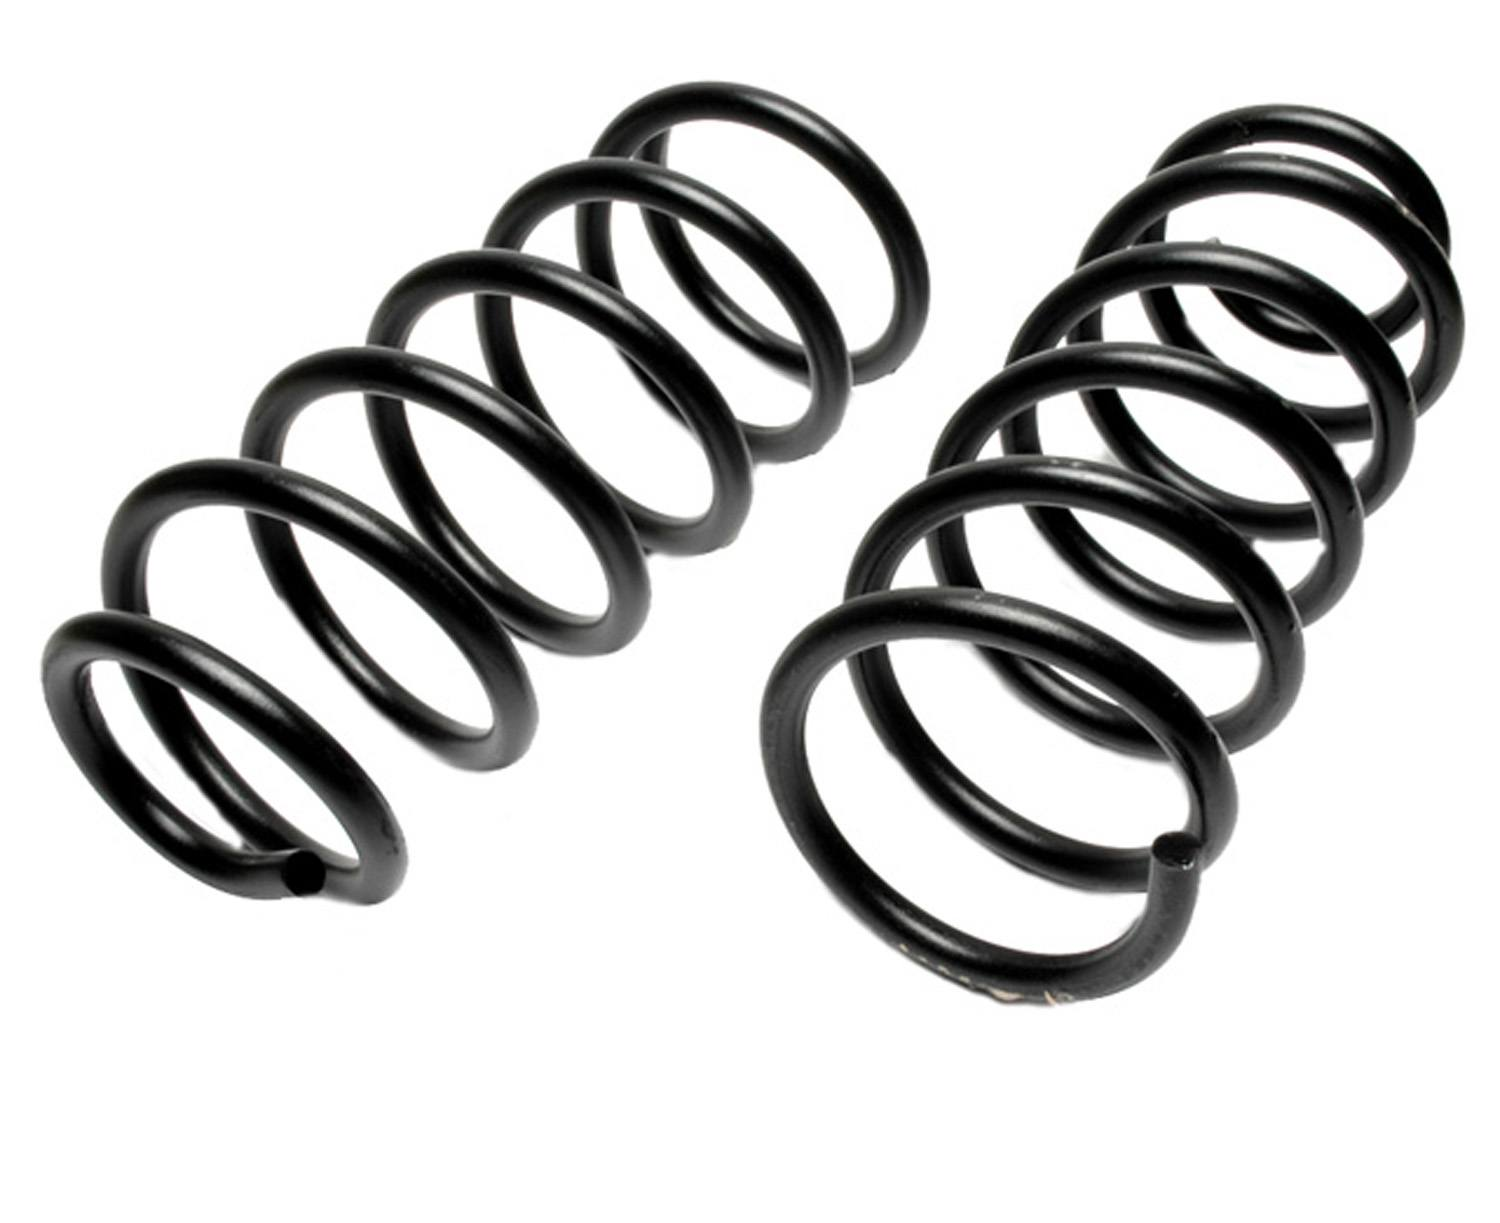 ACDELCO PROFESSIONAL - Coil Spring - DCC 45H0089